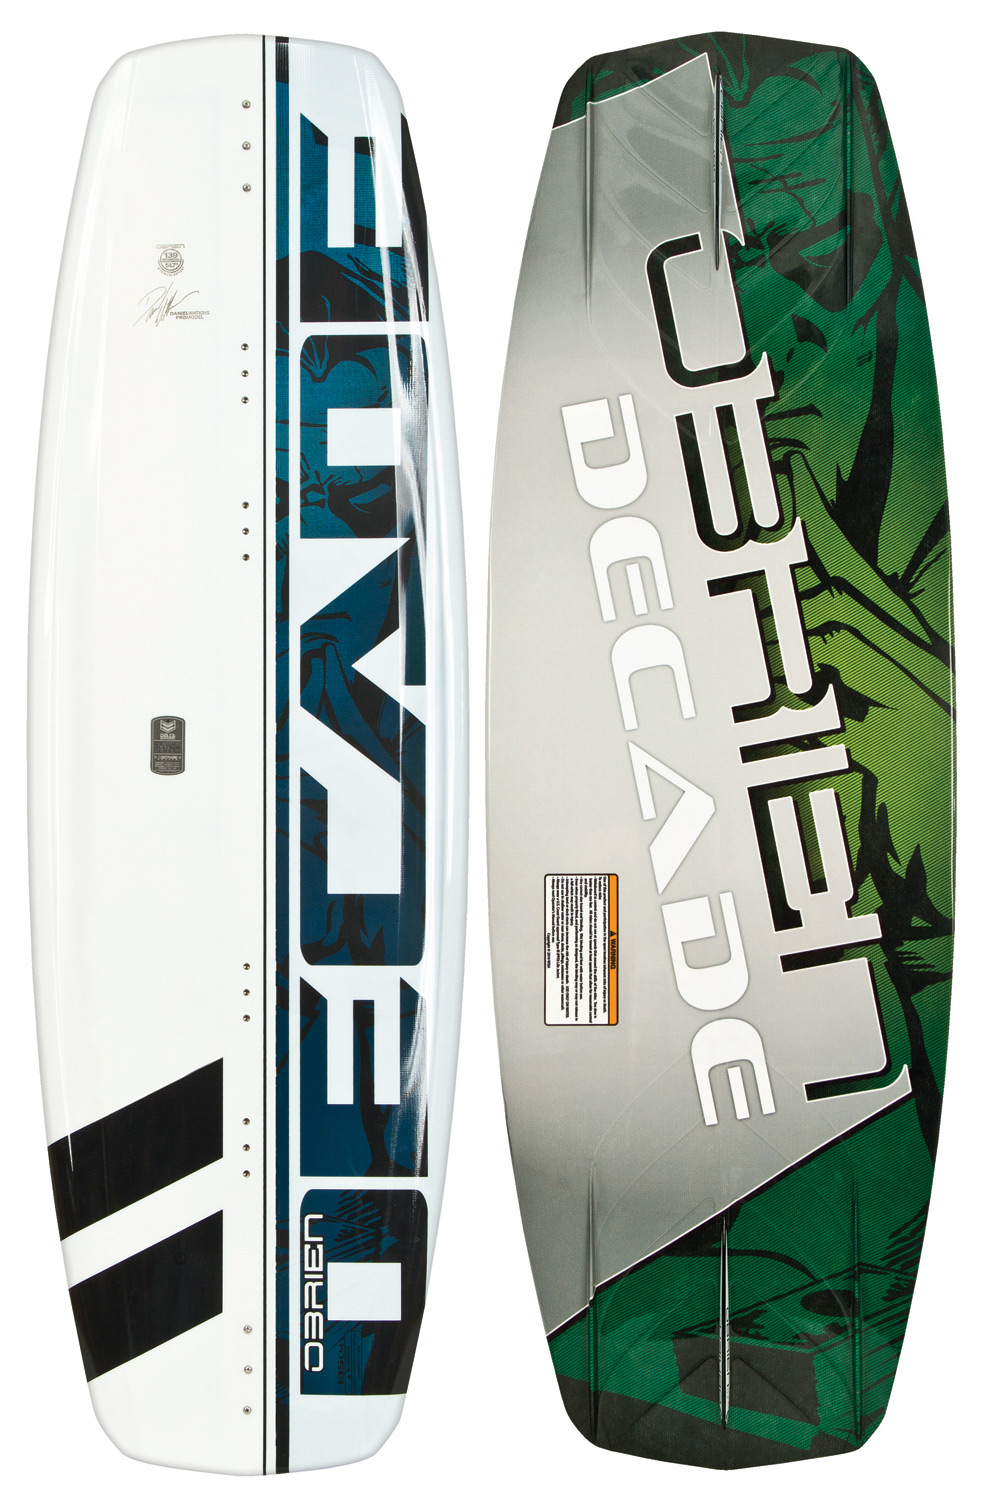 "Wake The O'Brien Decade Wakeboard is quickly becoming the board of choice for both freeride and competitive riders. Incorporating 11 years of collective development and the most extensive prototyping ever performed on an O'Brien board, the Decade pushes the envelope of thought and progression of wakeboard design. The variable edge profile is wide through the center 14"" of the board and quickly tapers to a more refined edge from the boot position to the tips of the board. This gives the board a unique float feel when centered, transferring to deep-set edge when carving. The expanded Delta base keeps a clean water break off the tail of the board, reducing rocker-induced drag and providing optimum release off the wake. The molded fins are as thin as possible for minimal drag and optimum control, and are combined with a 3-stage rocker for just the right amount of kick. The Clean V bottom through the center of the board makes landings buttery soft. The O'Brien Decade Wakeboard, a sure crowd pleaser on the water this season!* Variable edge profile * Expanded DELTA base * Thin molded fins * 3-stage rocker * Clean V bottom * Wakeboard Binding Compatibility * Can accommodate bindings with a 6in binding plate * Can only accommodate a single mounting position option for Liquid Force bindings with a 8in binding plate and offers two positions for all other vendors - $187.95"